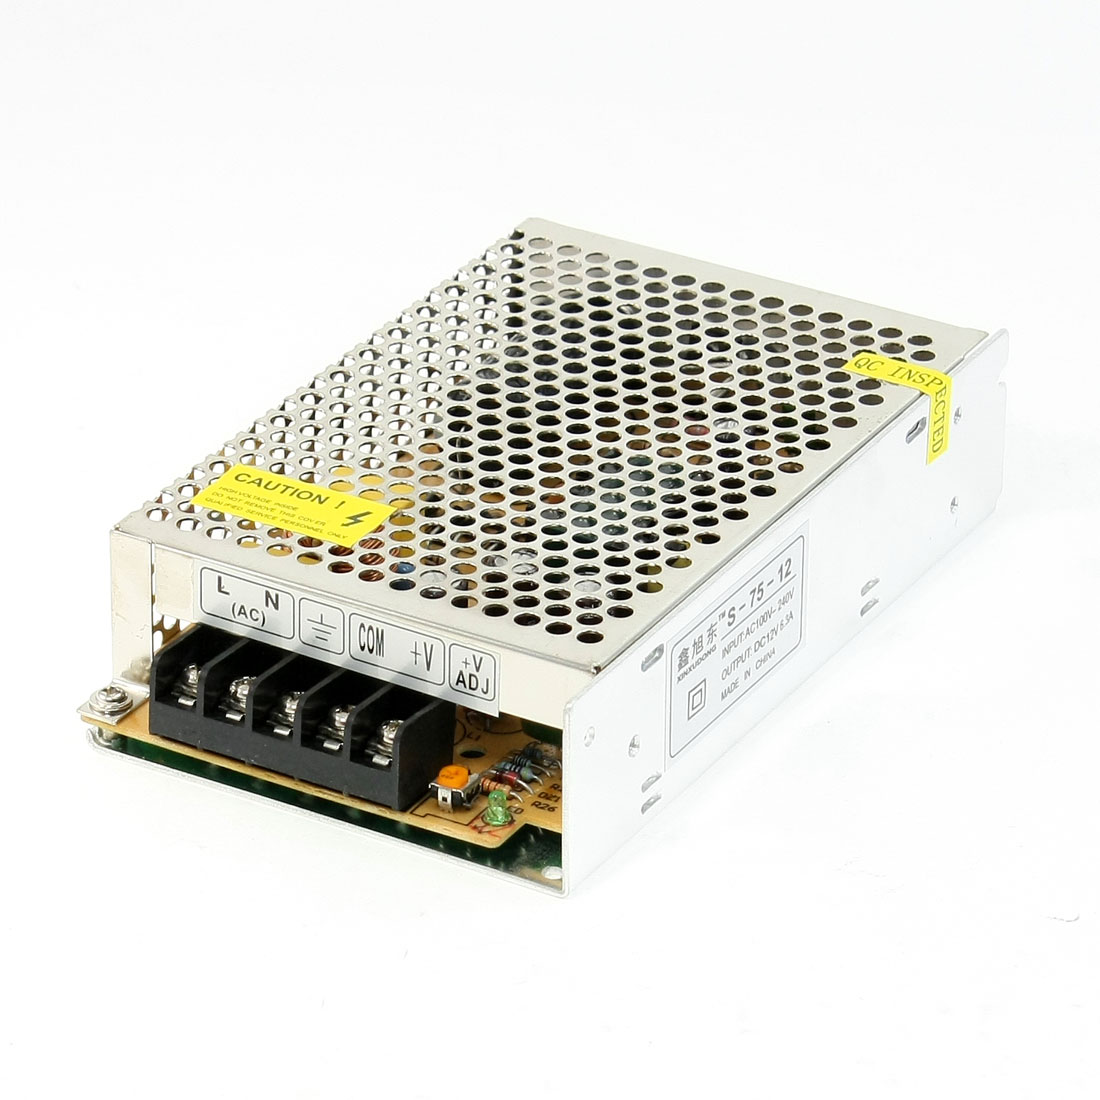 100-240VAC to DC 24V 6.3A 75W Supply Power Convertor for LED Illumination